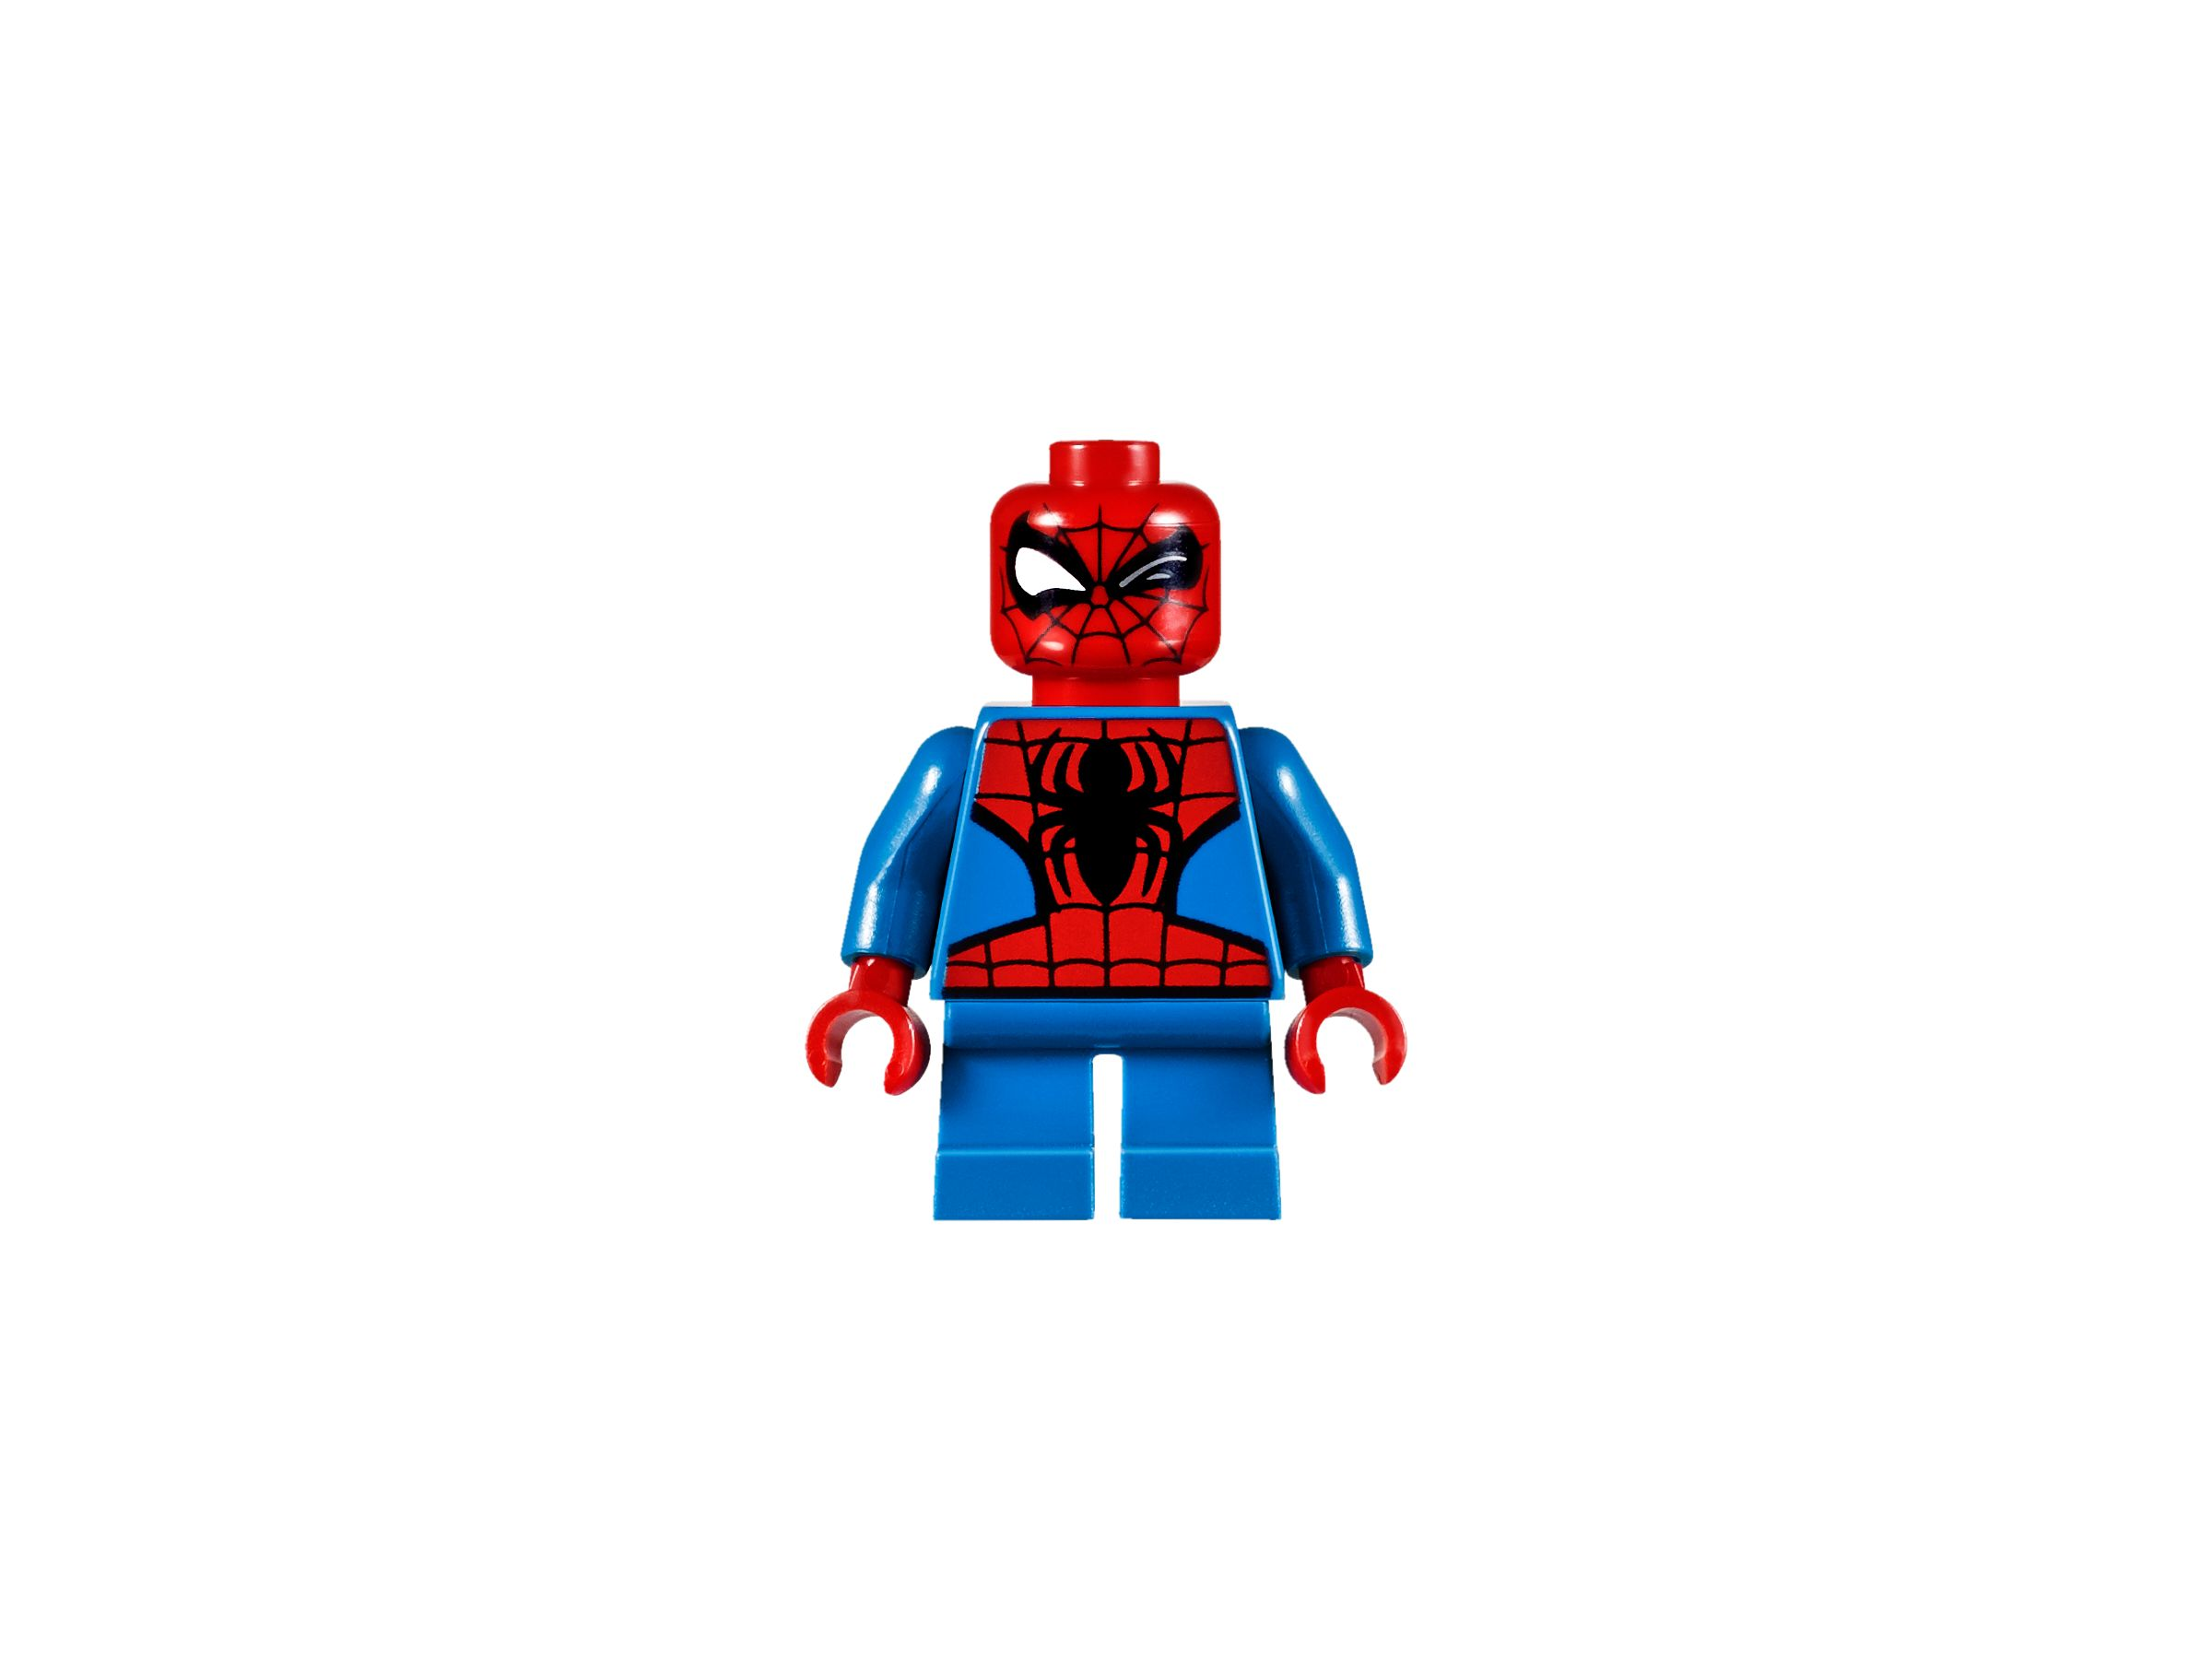 LEGO Super Heroes 76071 Mighty Micros: Spider-Man vs. Scorpion LEGO_76071_alt7.jpg